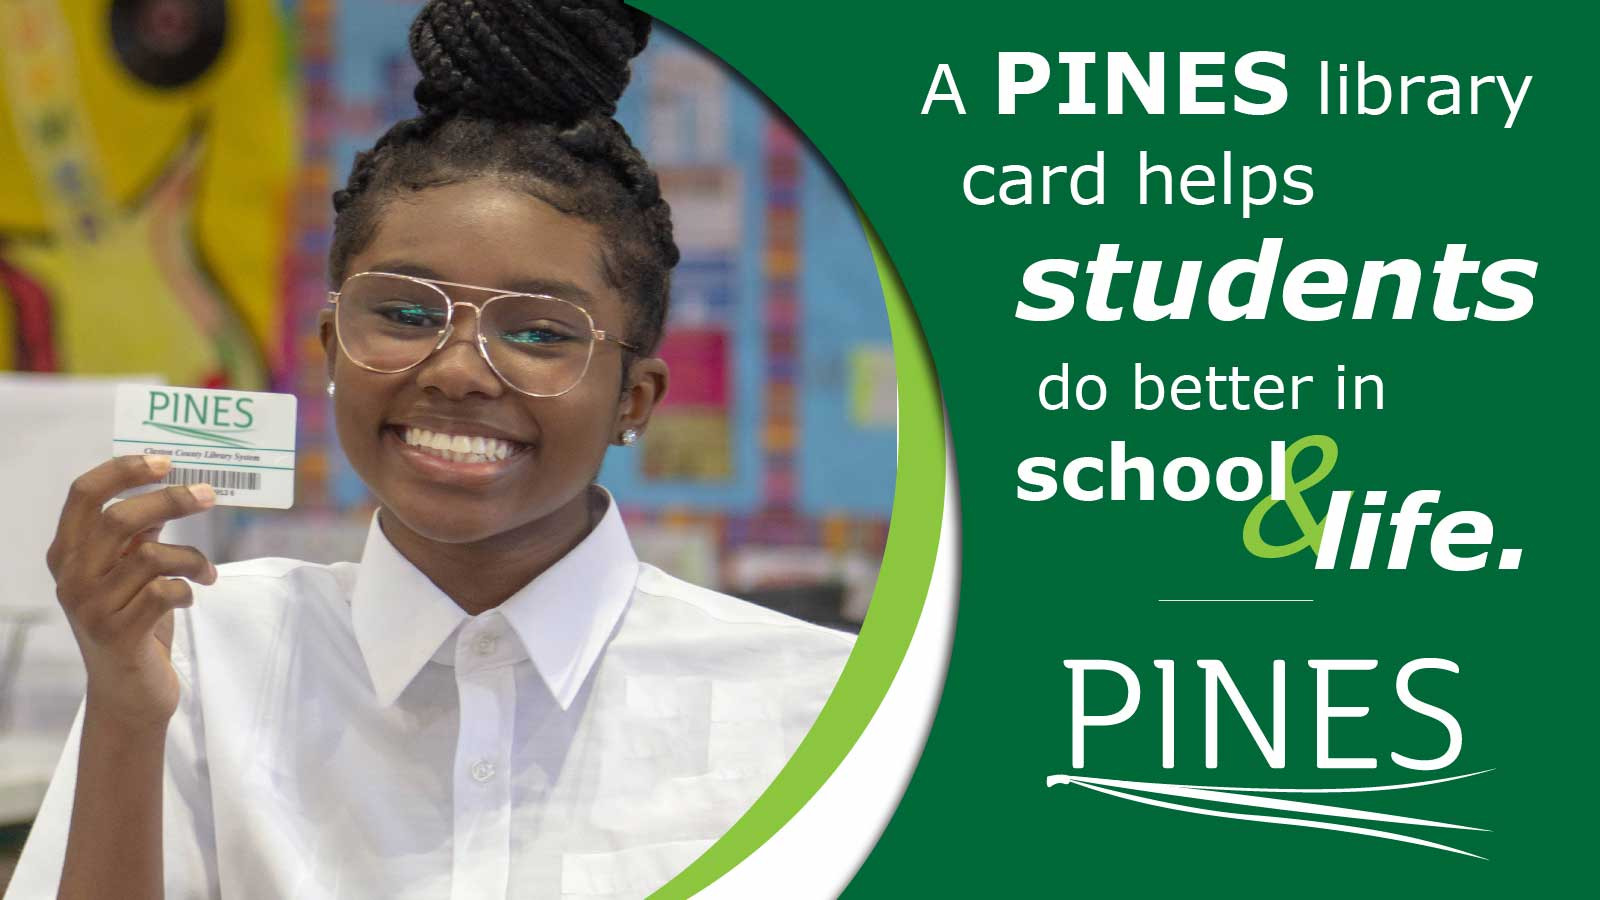 pines library card helps students graphic